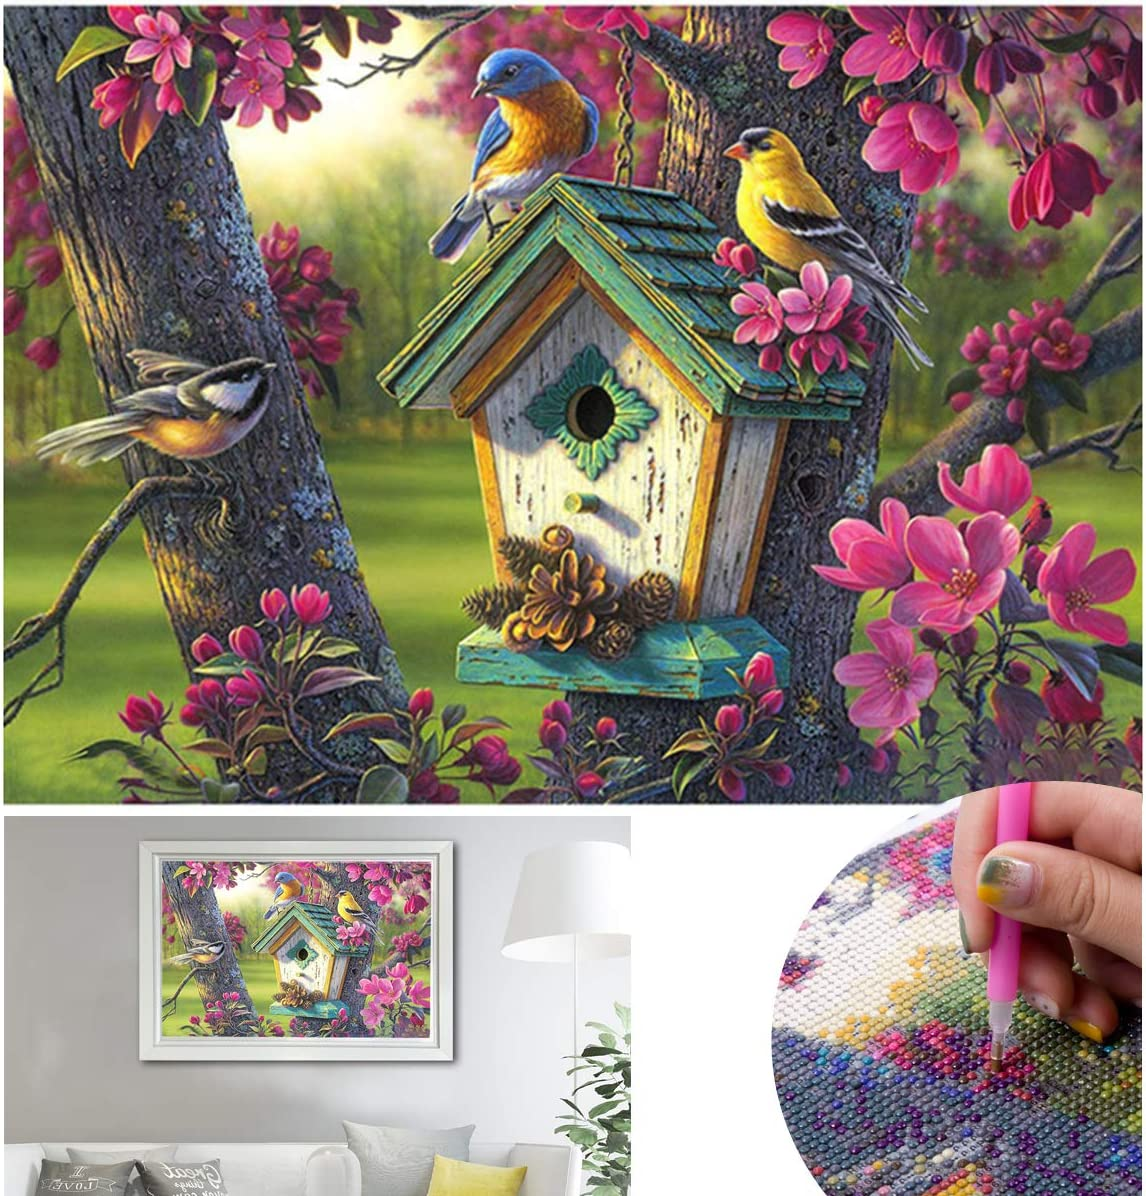 5D Diamond Painting Kits Full Drill Cross Stitch Robinson Crusoe Parrot Goat Hedgehog DIY Mosaic Embroidery Home Decor Bedroom Wall Painting